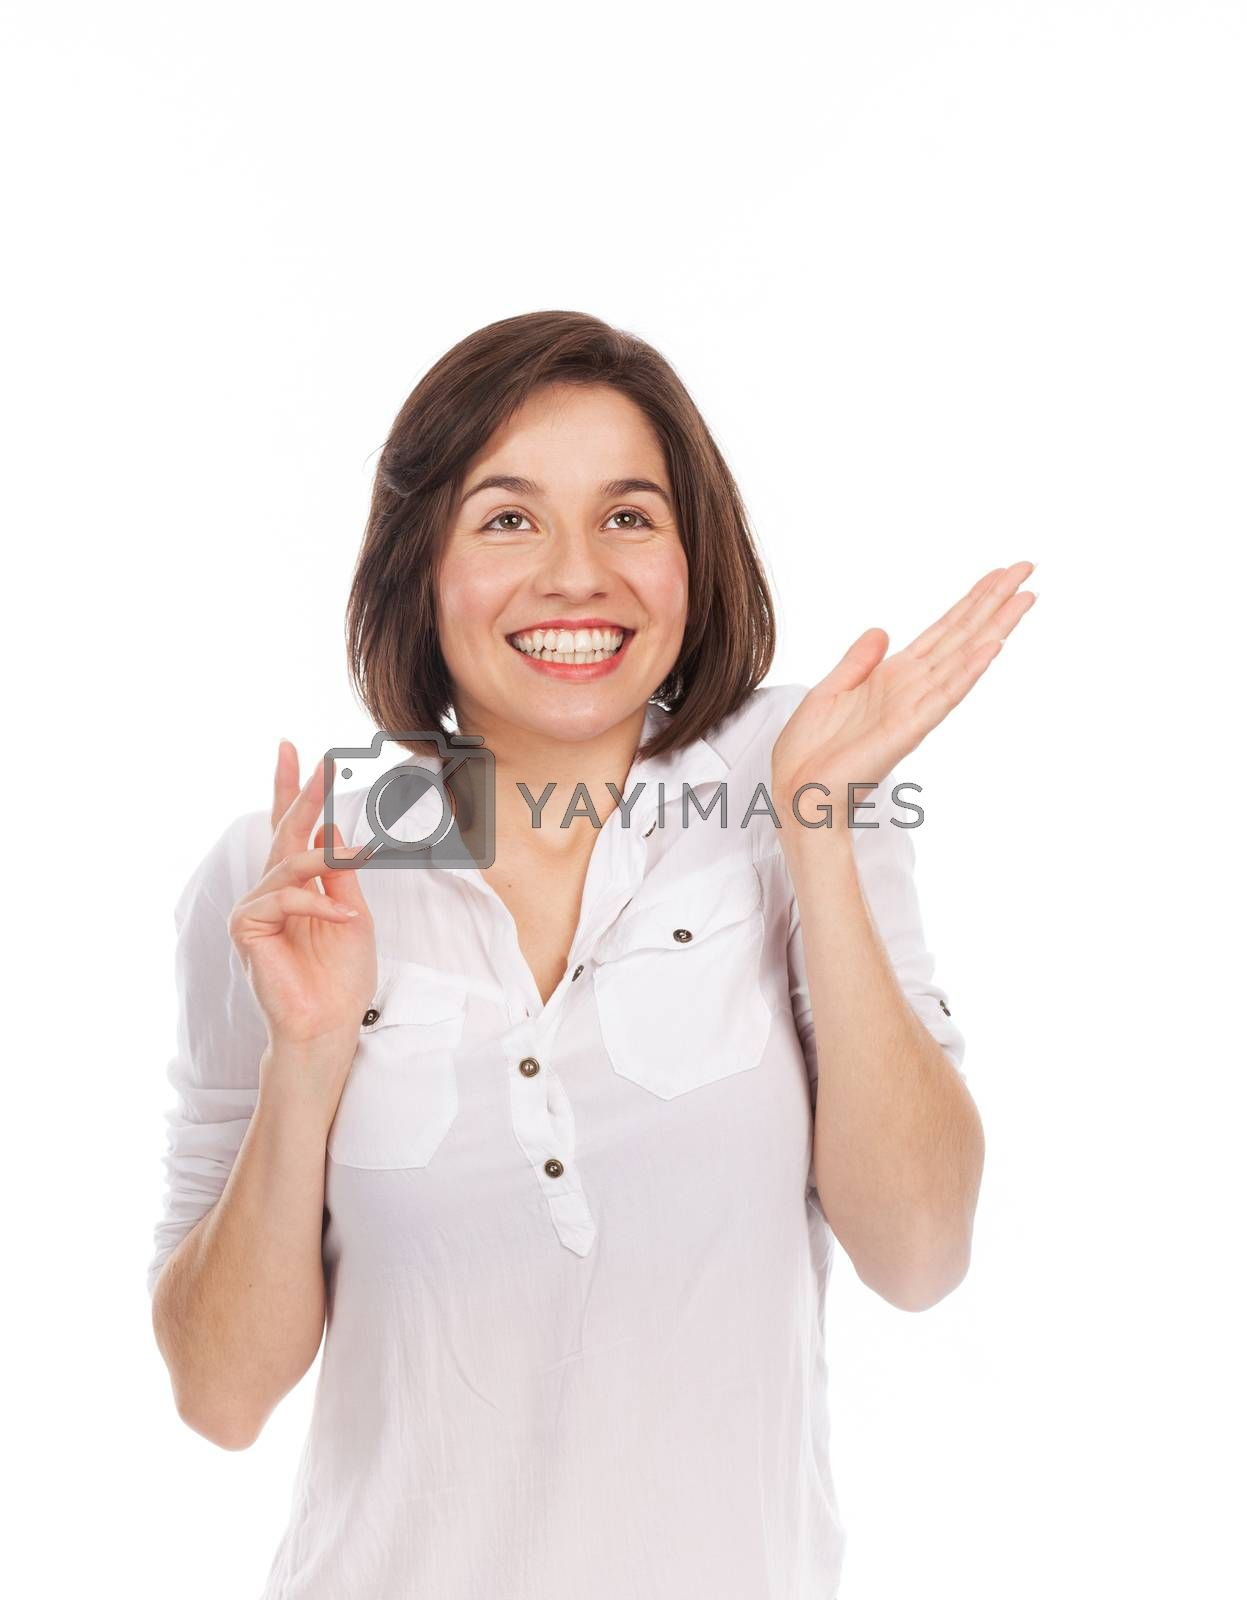 Portrait of a young woman looking very joyful, isolated on white